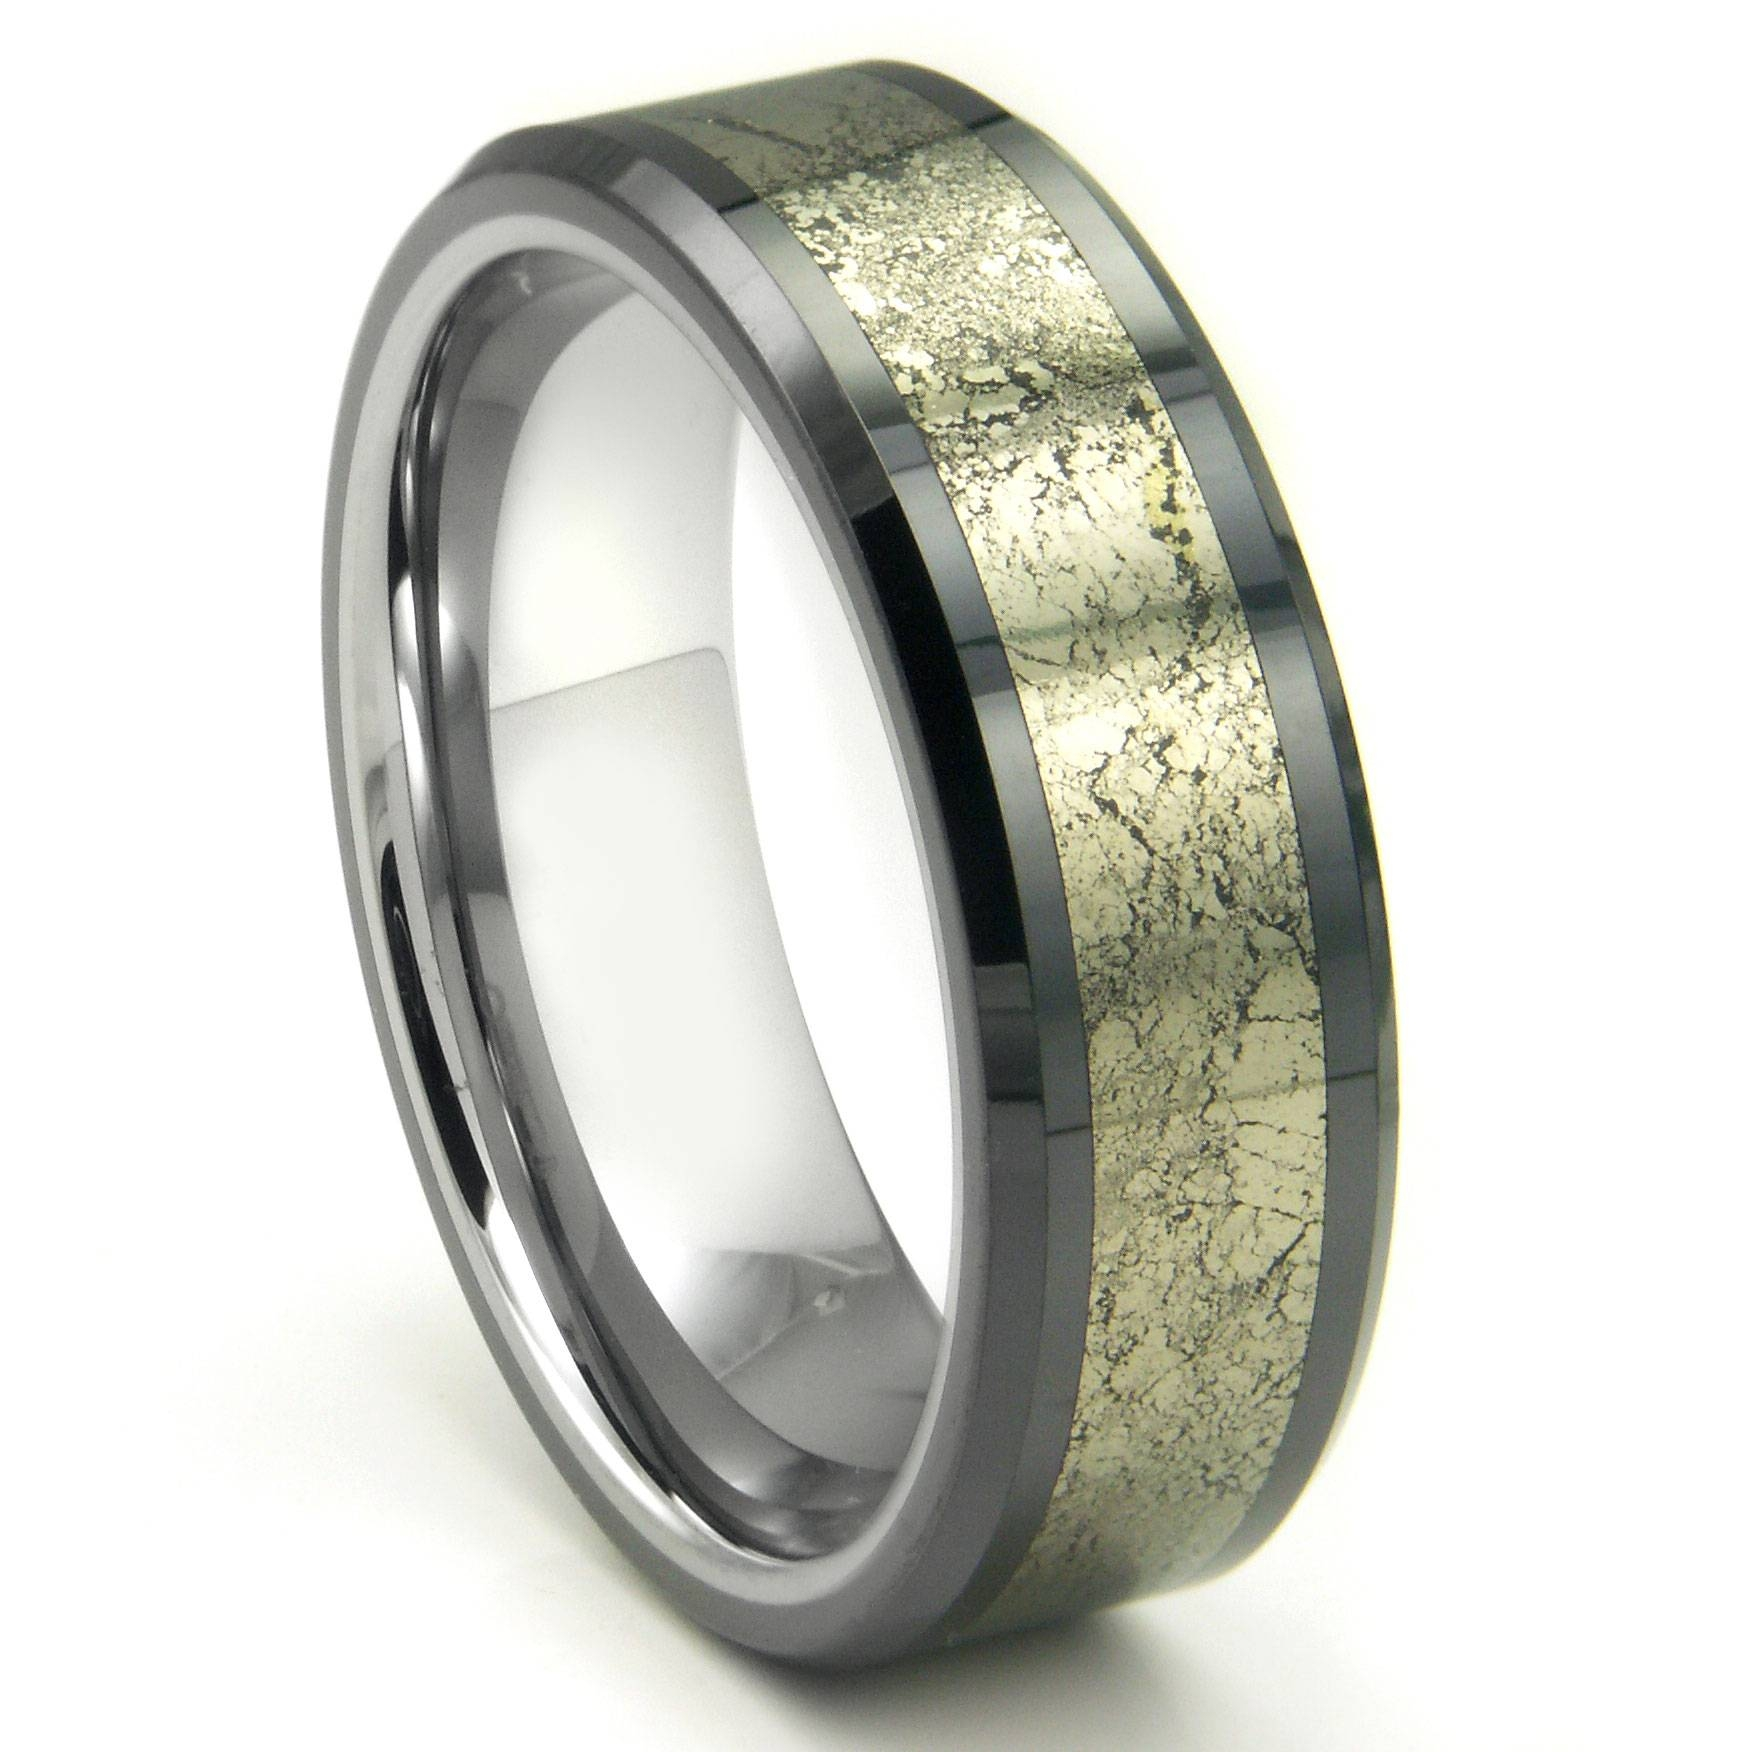 Mens Tungsten Rings & Wedding Bands – Titanium Kay Regarding Military Wedding Bands (View 6 of 15)